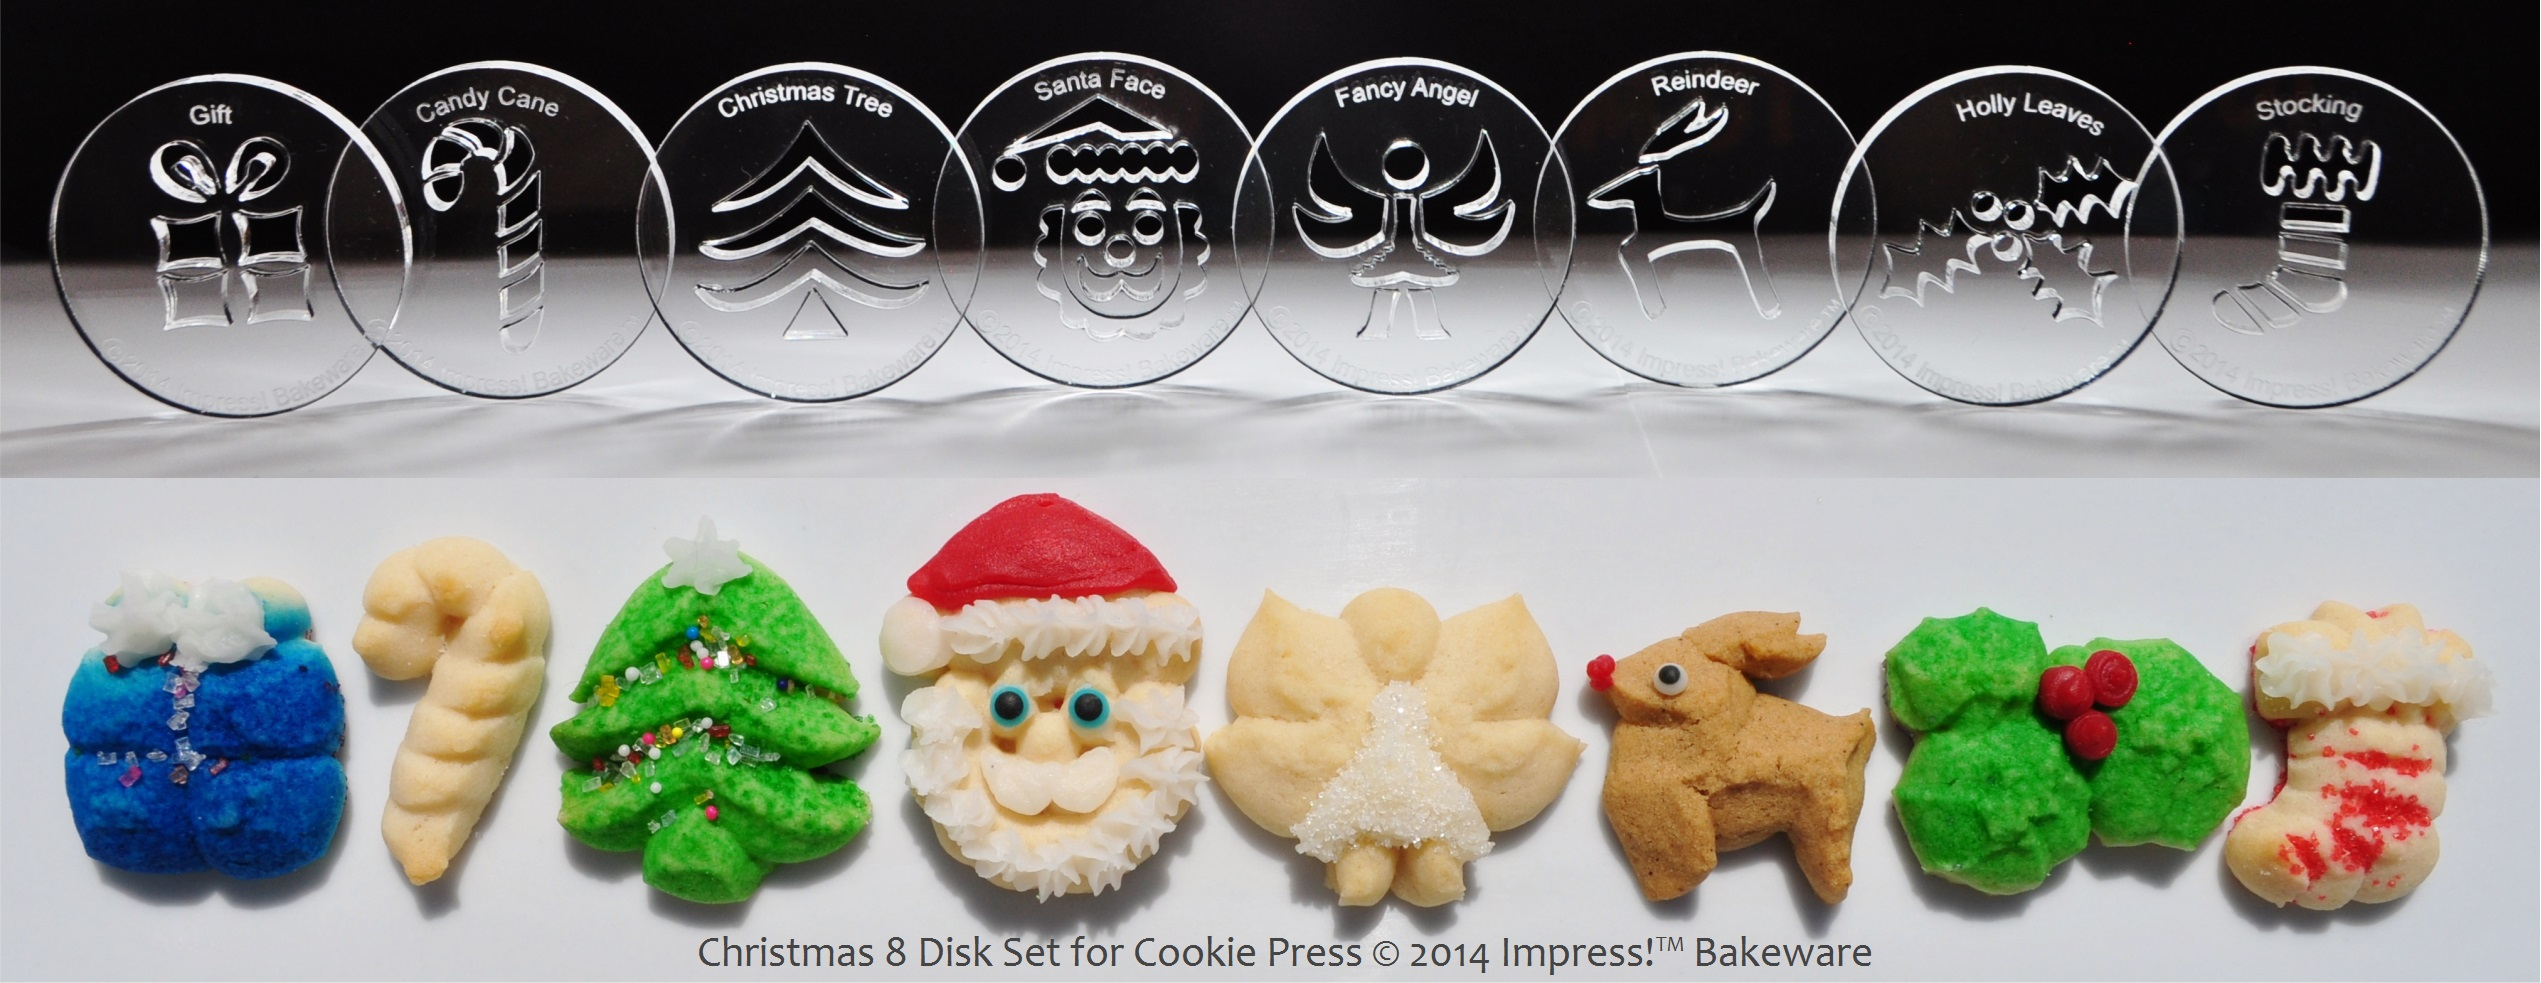 Peppermint snowflake amp candy cane cookies creative cookie press